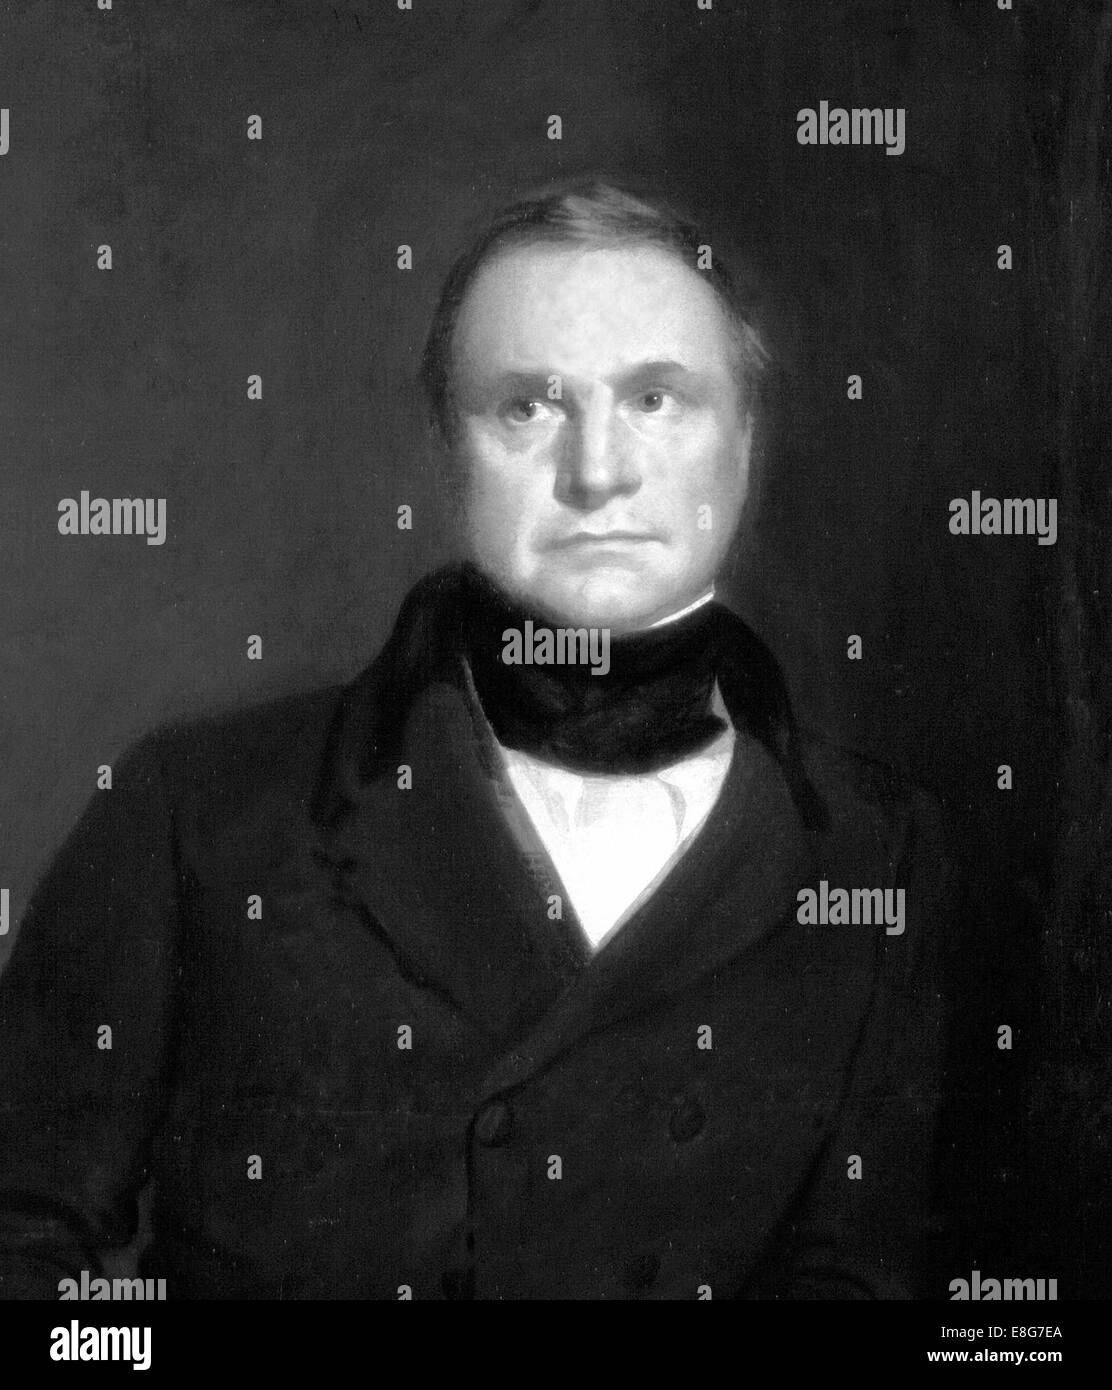 CHARLES BABBAGE (1791-1871) English mathematician and inventor. Engraving based on 1860 portrait. - Stock Image